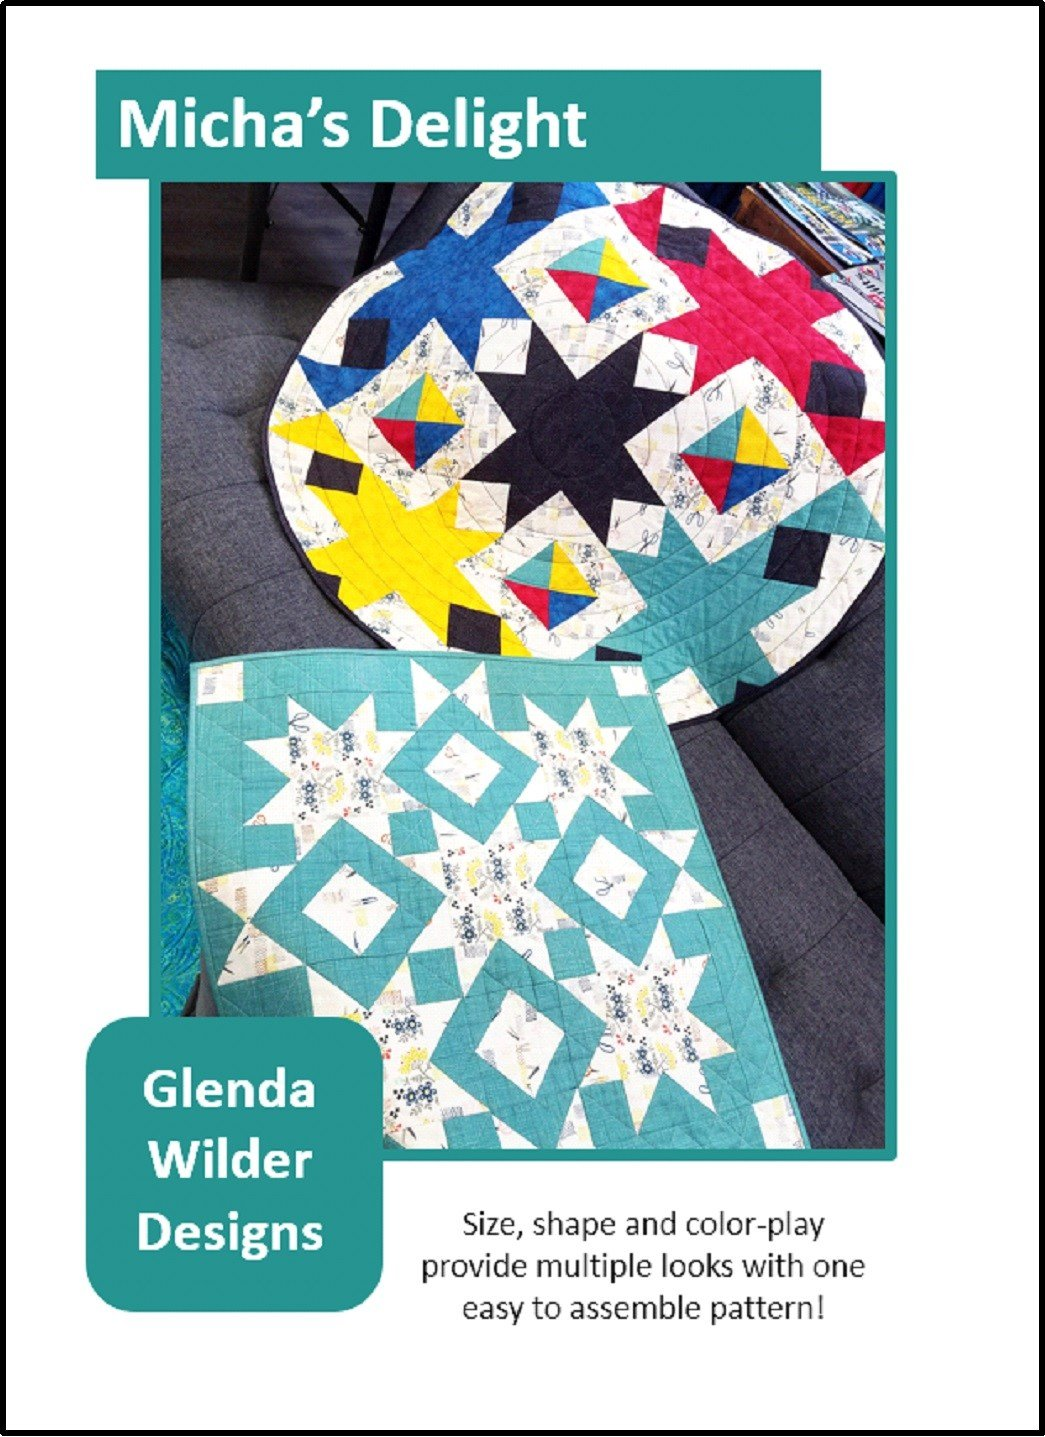 Glenda WIlder Designs - Micha's Delight